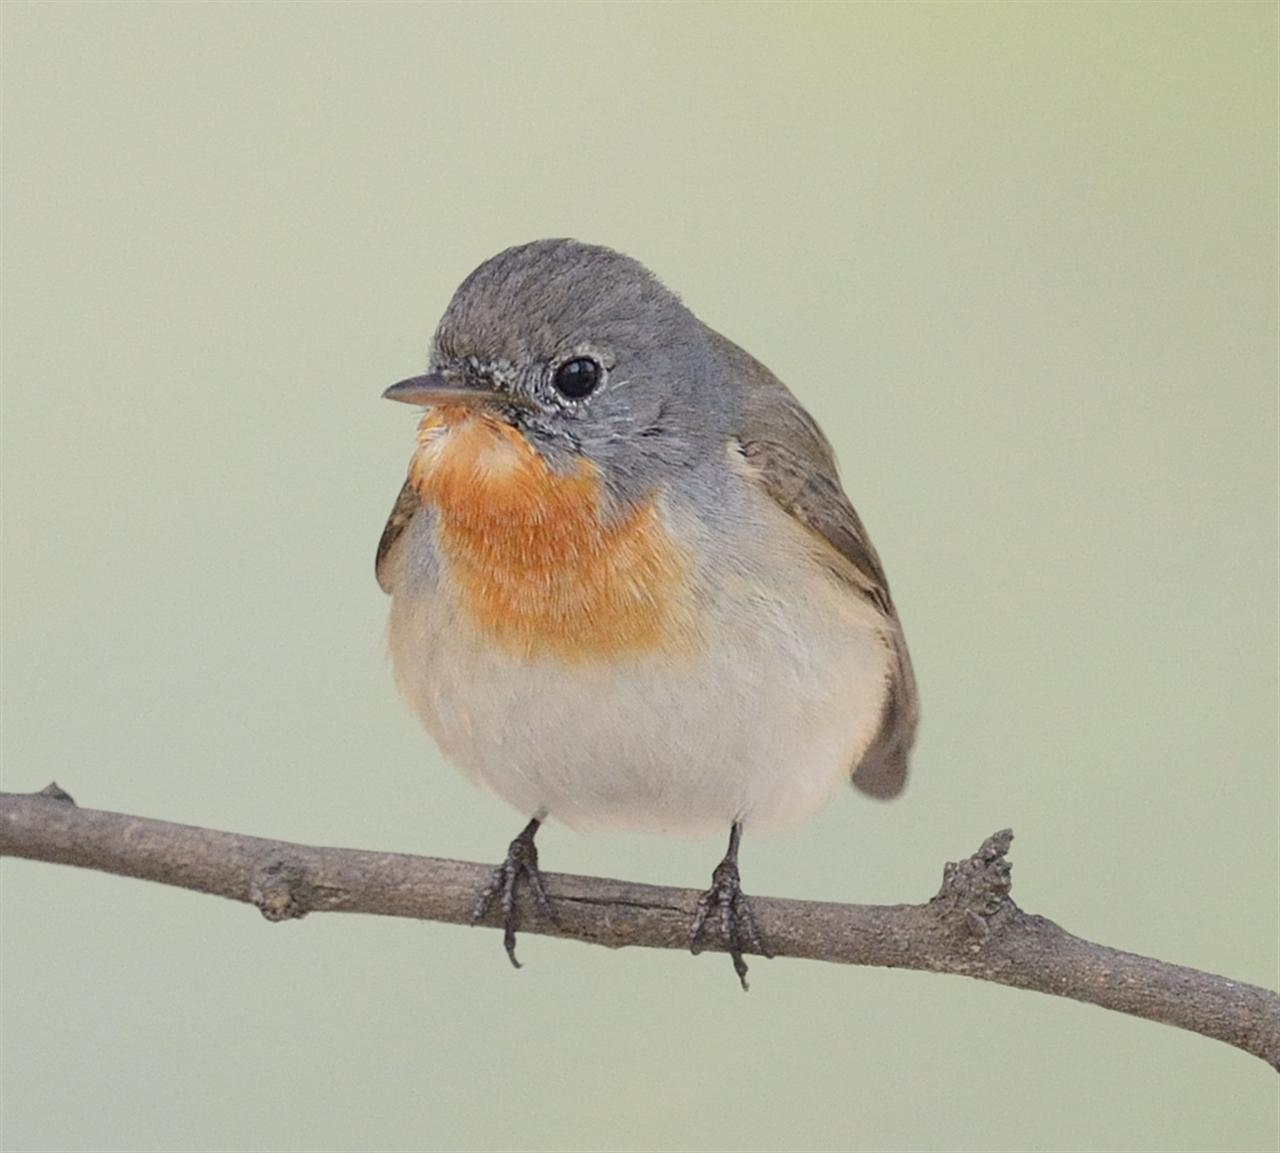 They are seen more frequently than the Asian Brown Flycatcher. During winter months, they are commonly seen diving for flies in the woody area contiguous to the Gold ground in the President's Estate.